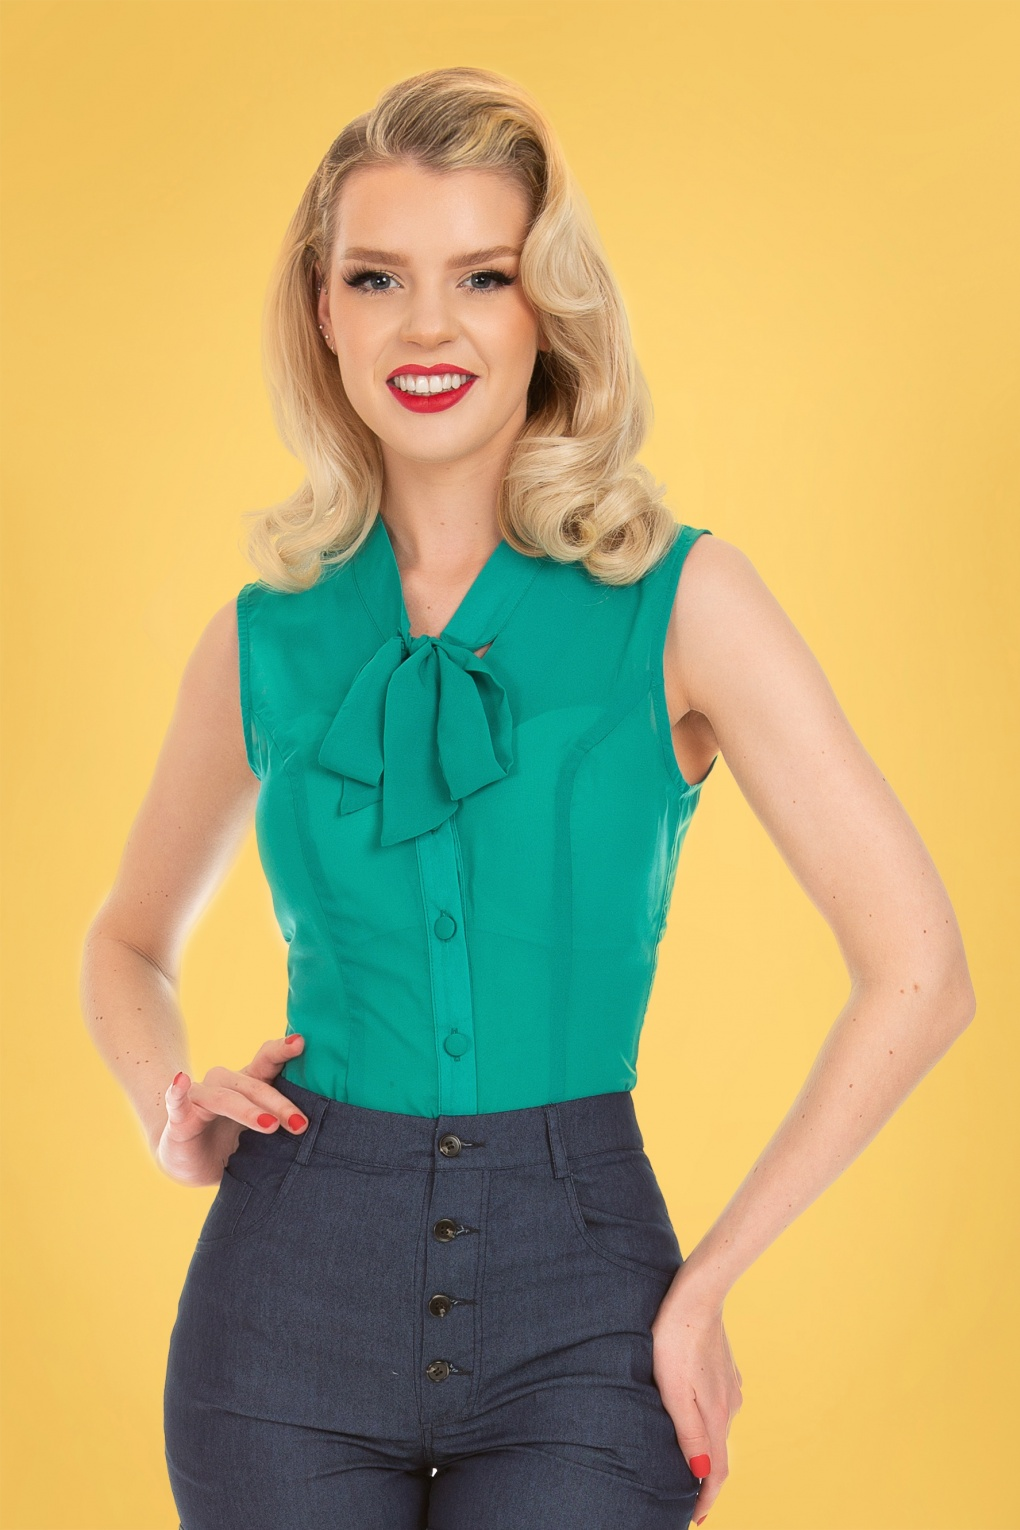 1950s Style Clothing & Fashion 50s Celestine Blouse in Teal Blue £26.69 AT vintagedancer.com